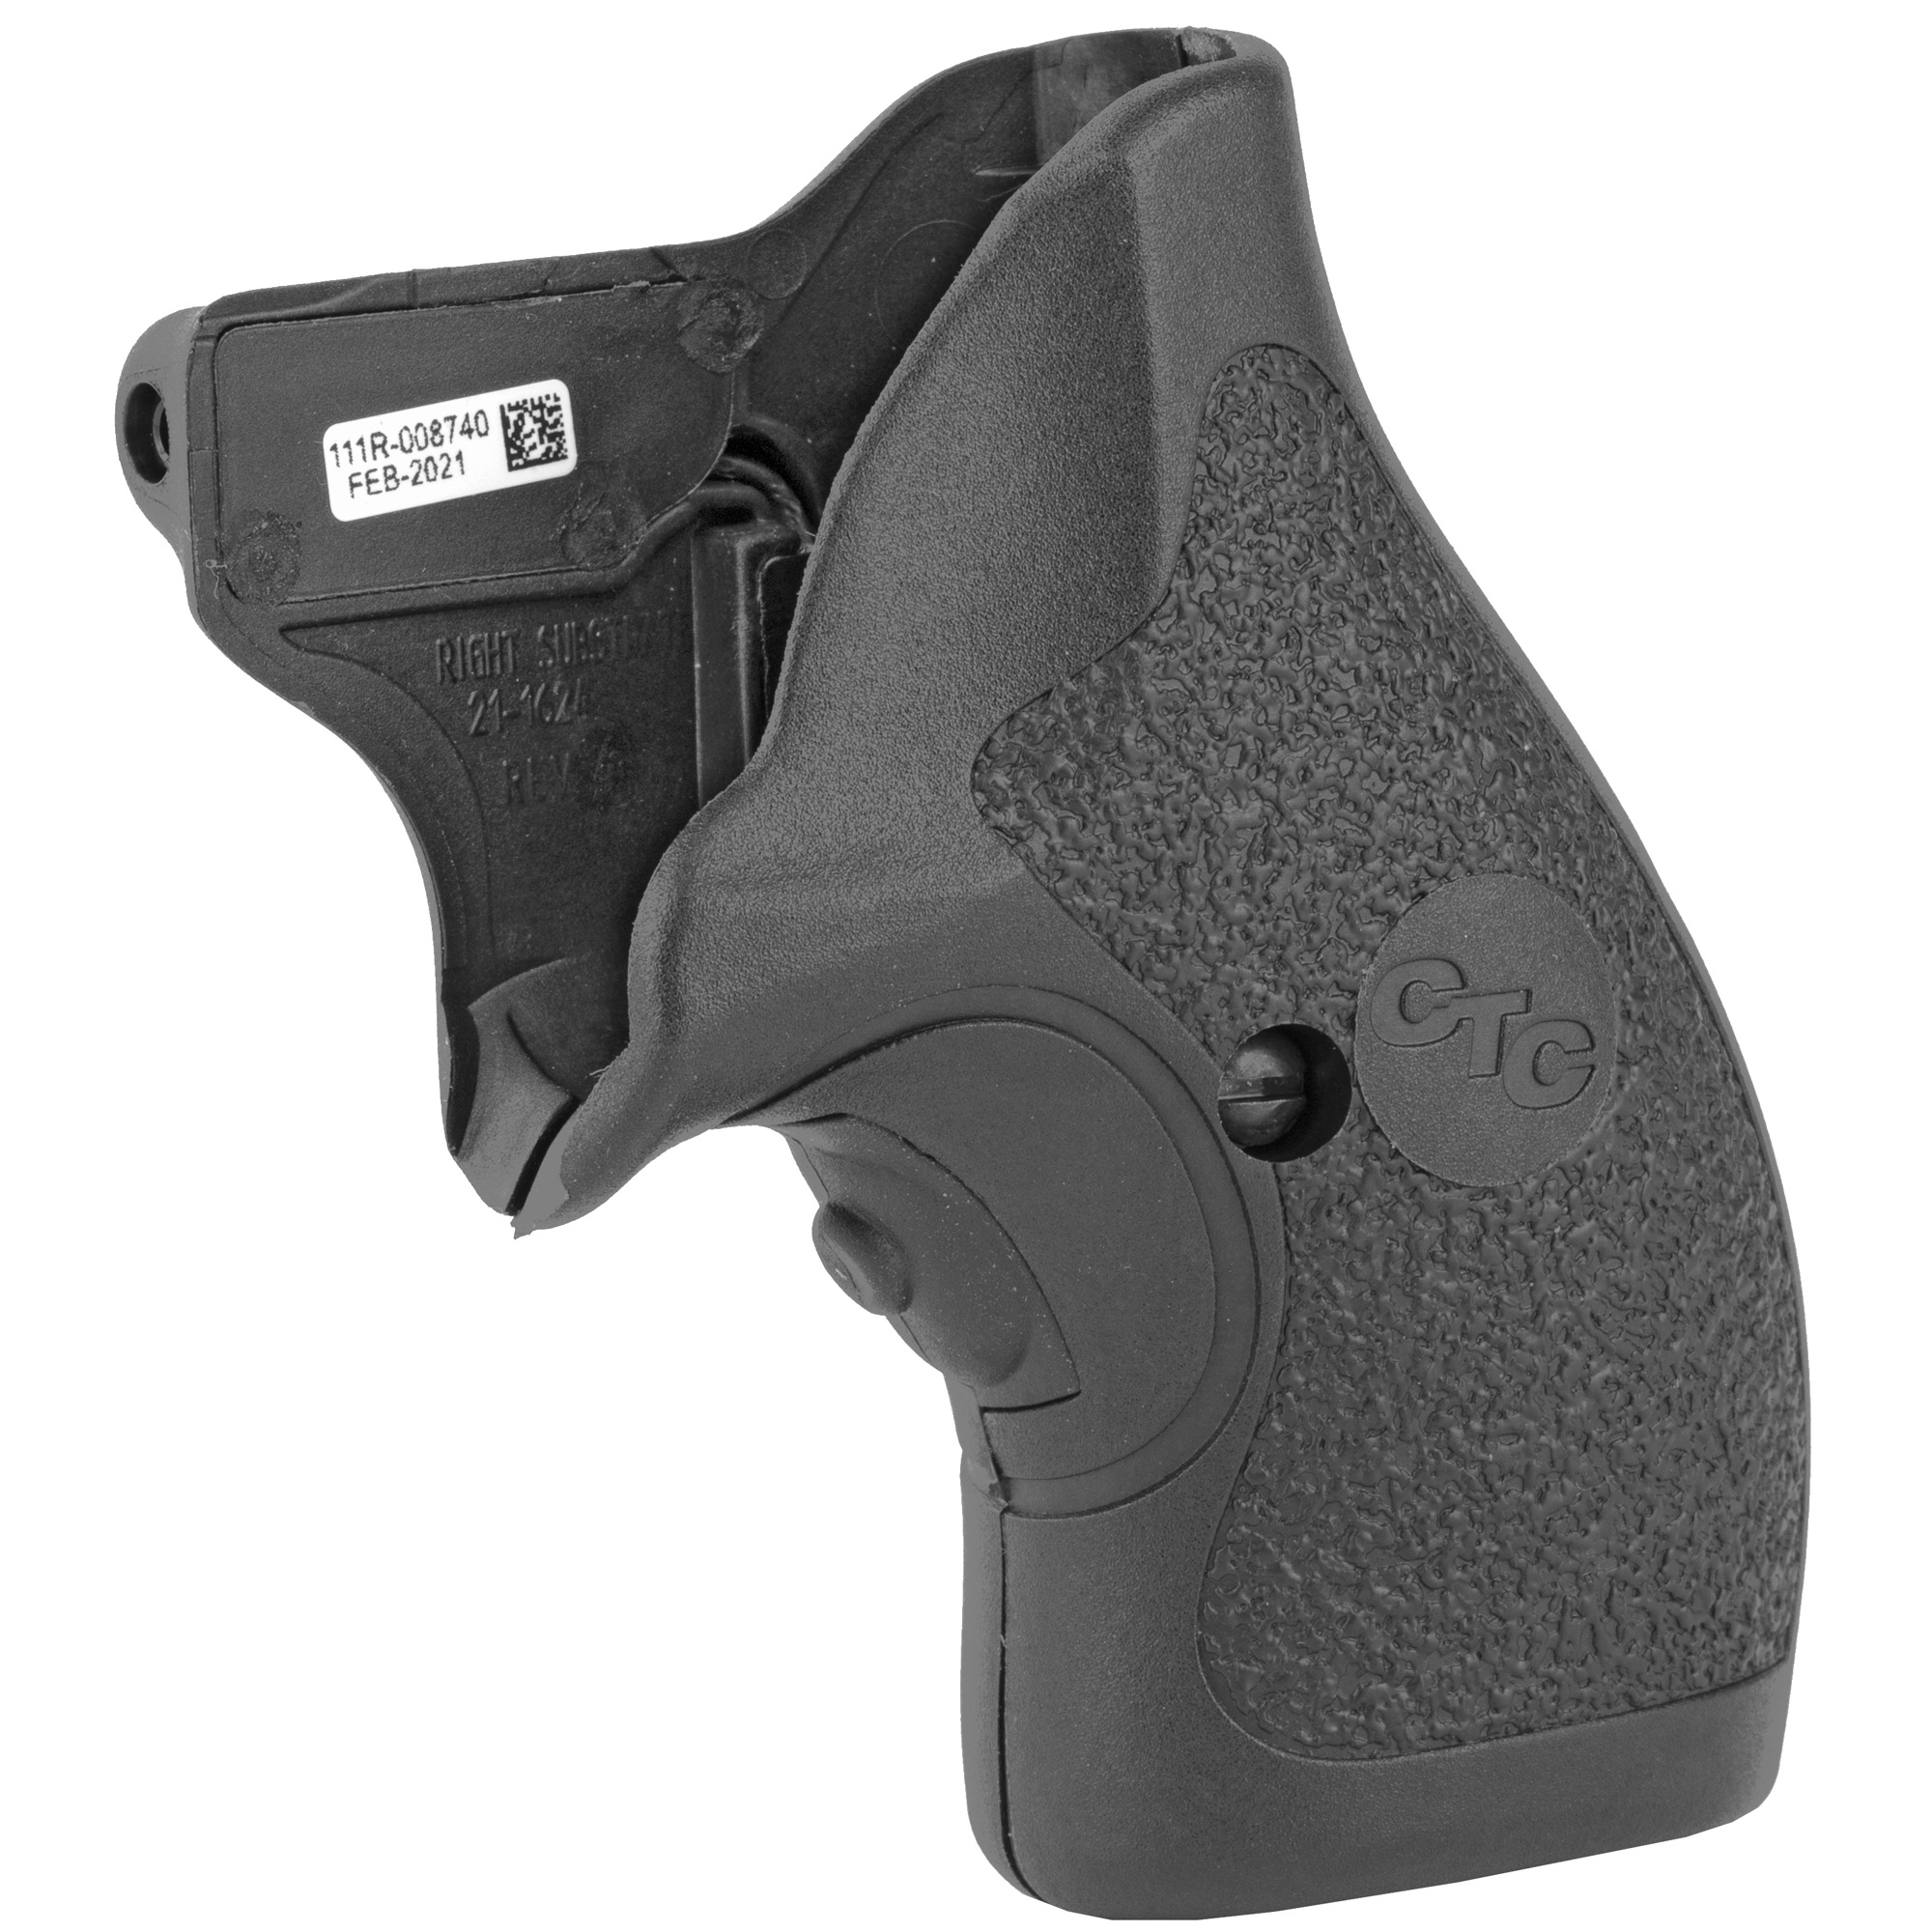 """LG-111 Lasergrips(R) for Ruger SP-101 revolvers are an ideal blend of rugged durability and ergonomic comfort. Featuring hard polymer construction"""" but with a smooth surface feel"""" the LG-111 provides for snag-free draws and the tactical advantage only Crimson Trace(R) Lasergrips(R) can offer."""